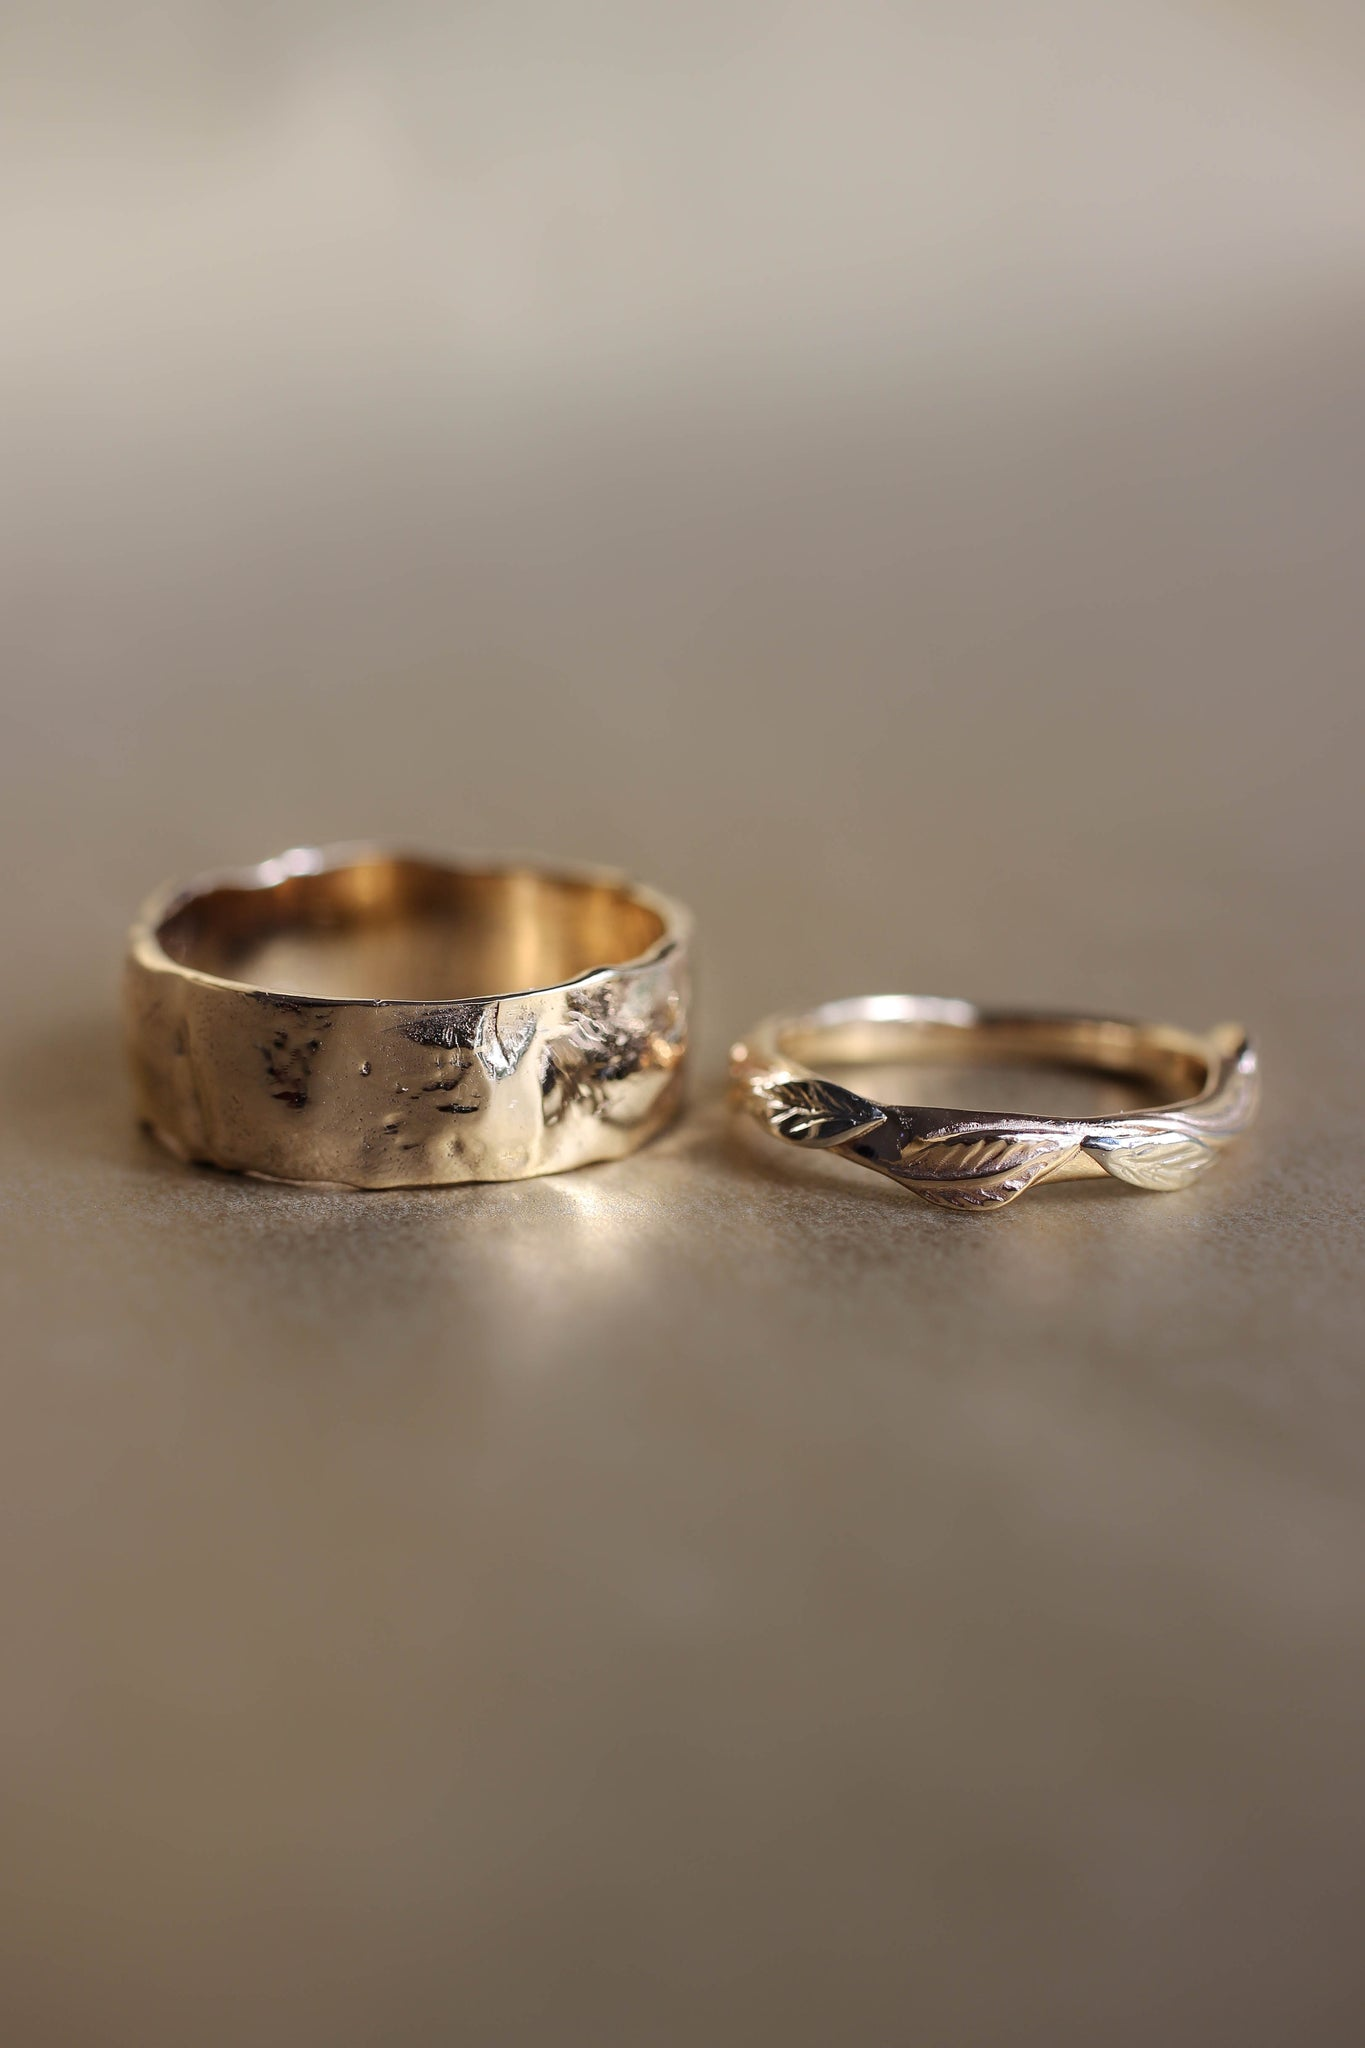 Rustic wedding bands set, gold nature rings for man and woman - Eden Garden Jewelry™